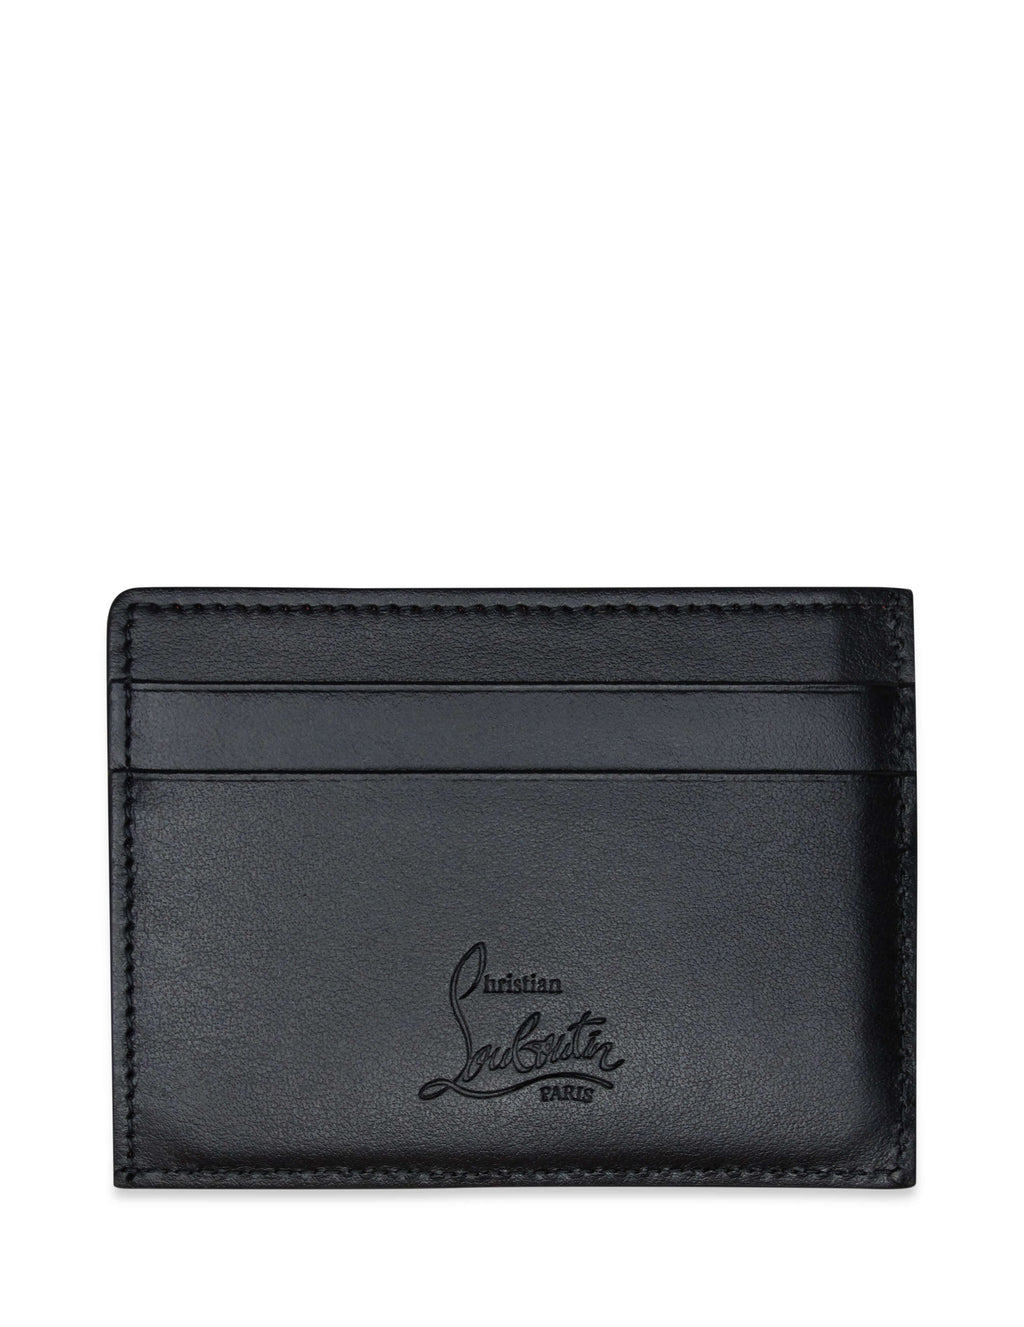 Christian Louboutin Love Card Holder Black 3185243bk01 Men's Giulio Fashion